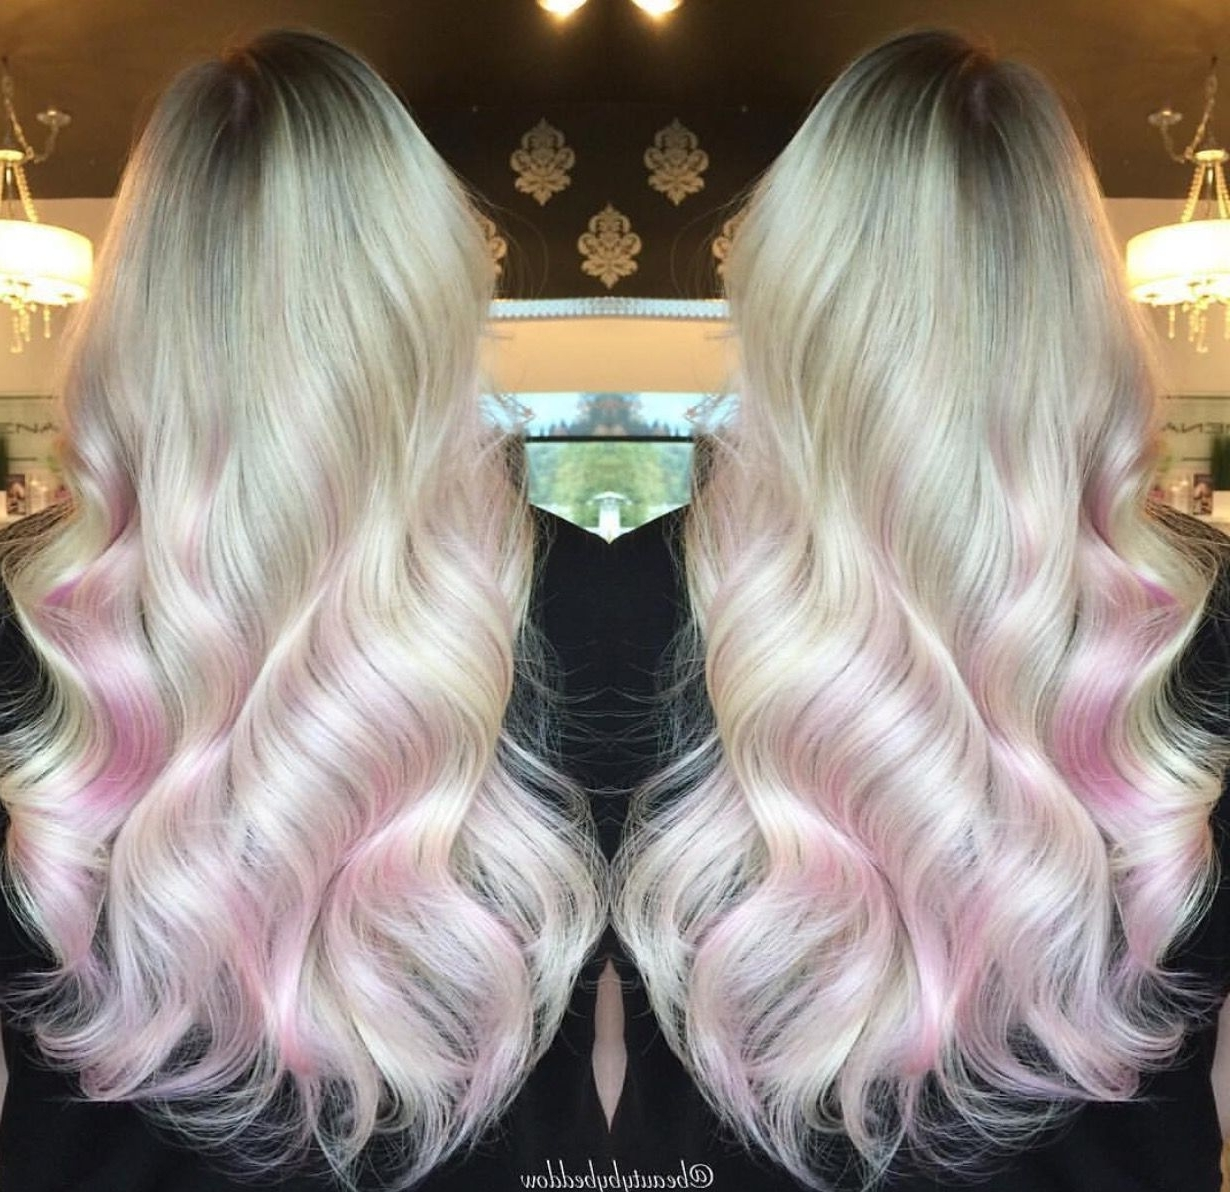 Long Platinum Blonde Locks With Pale Pink Underneath (View 15 of 20)